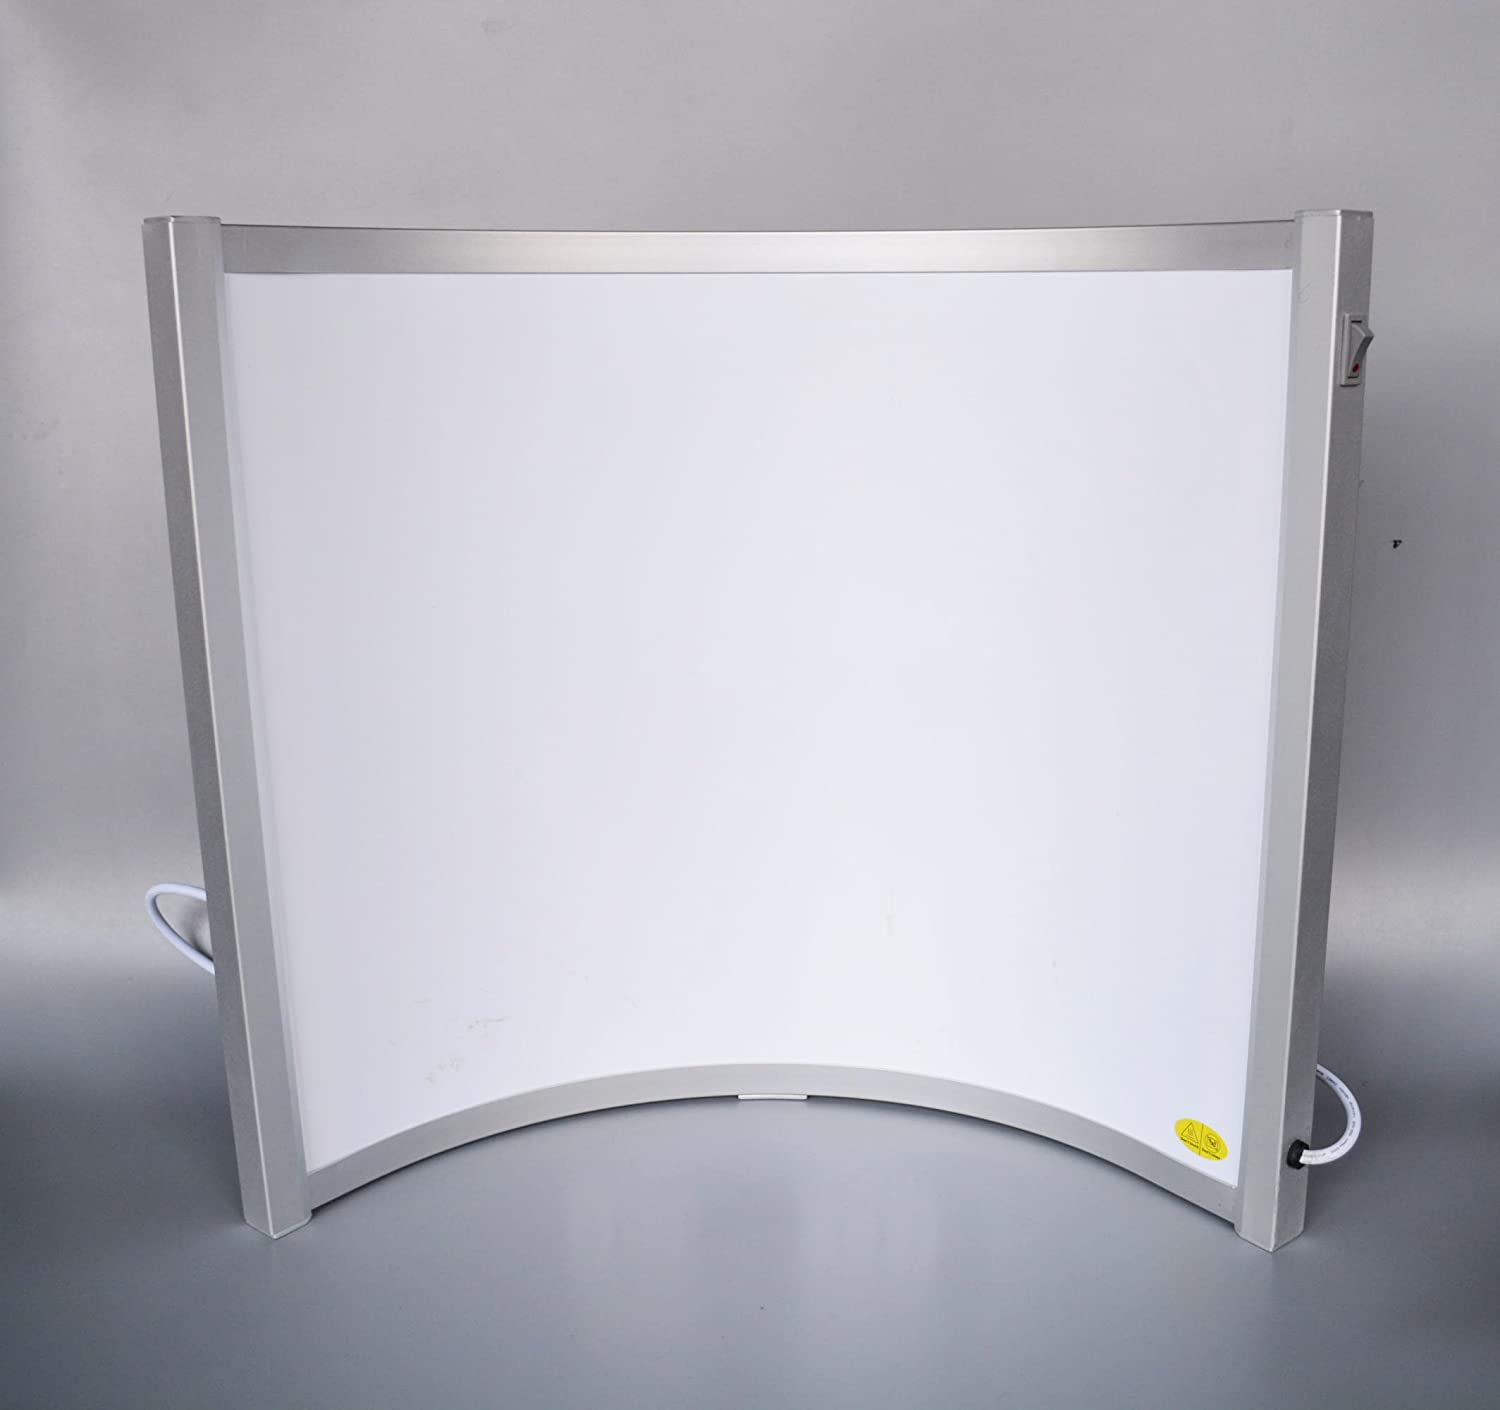 CURVED FREE STANDING 300W FAR INFRARED HEATING PANEL - PERFECT FOR HOME USE OR OFFICE USE - PLACE UNDER YOUR DESK Led Hero Ltd